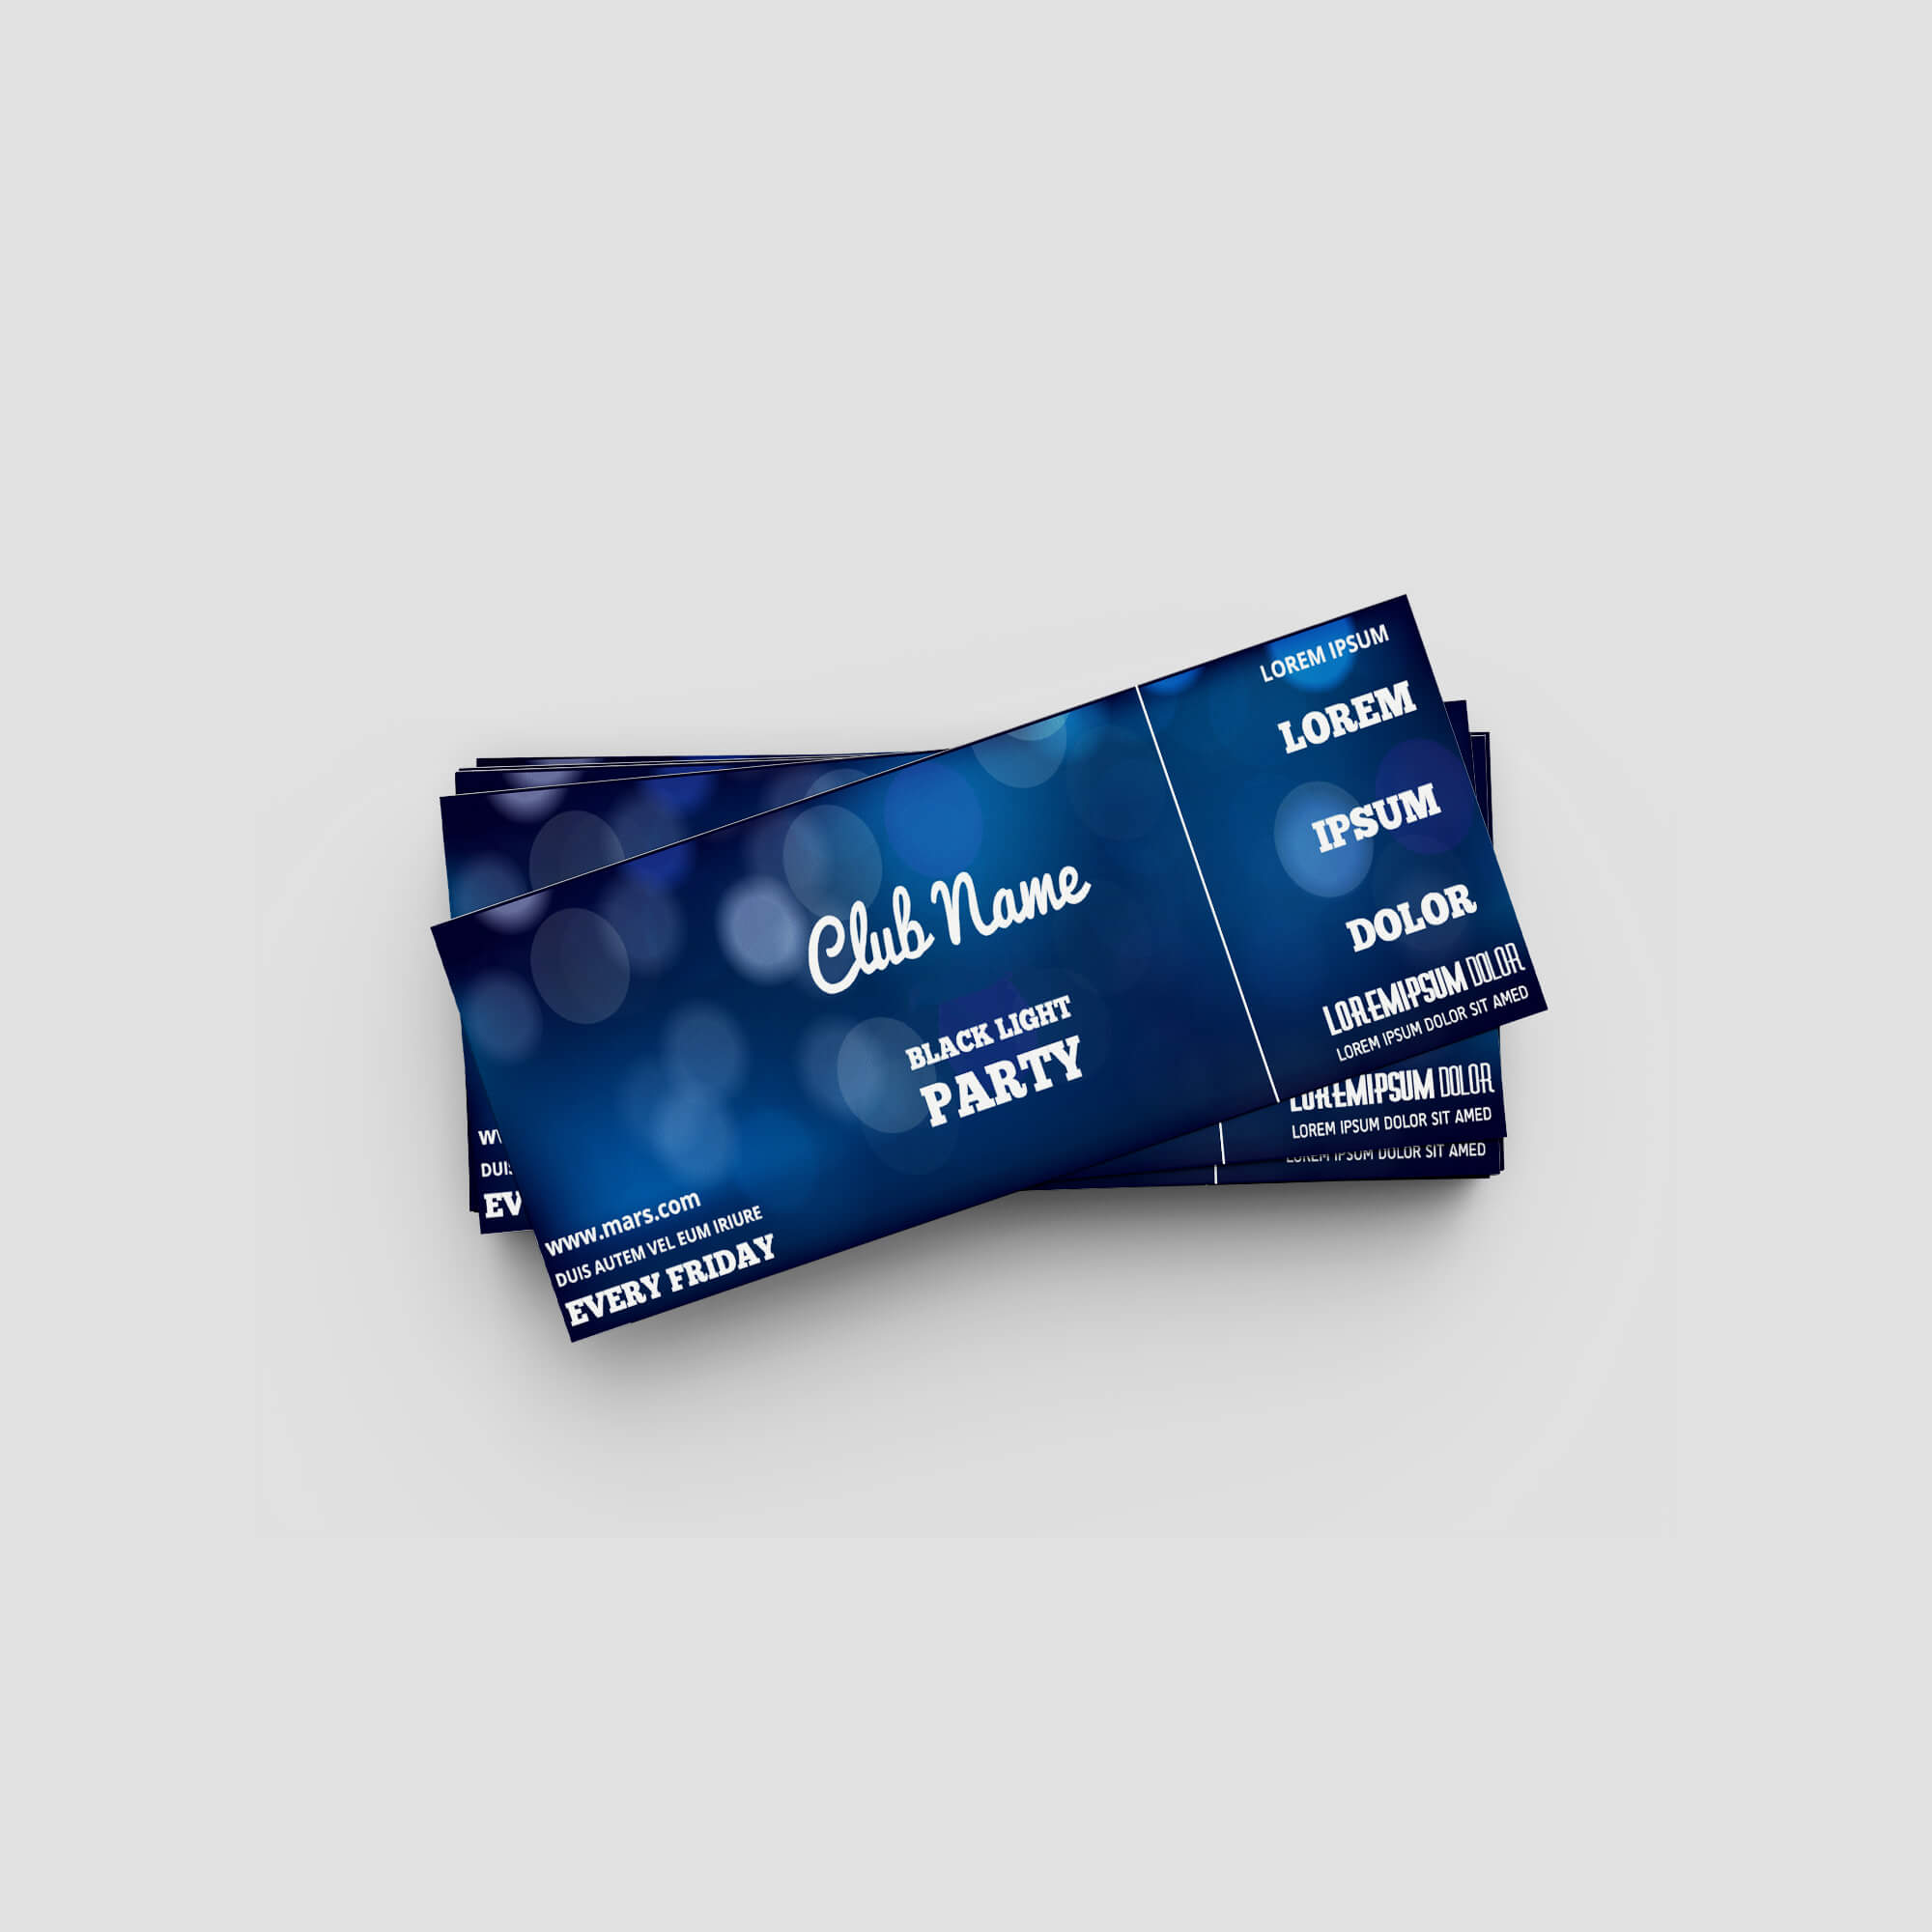 Design Free Event Ticket Mockup PSD Template